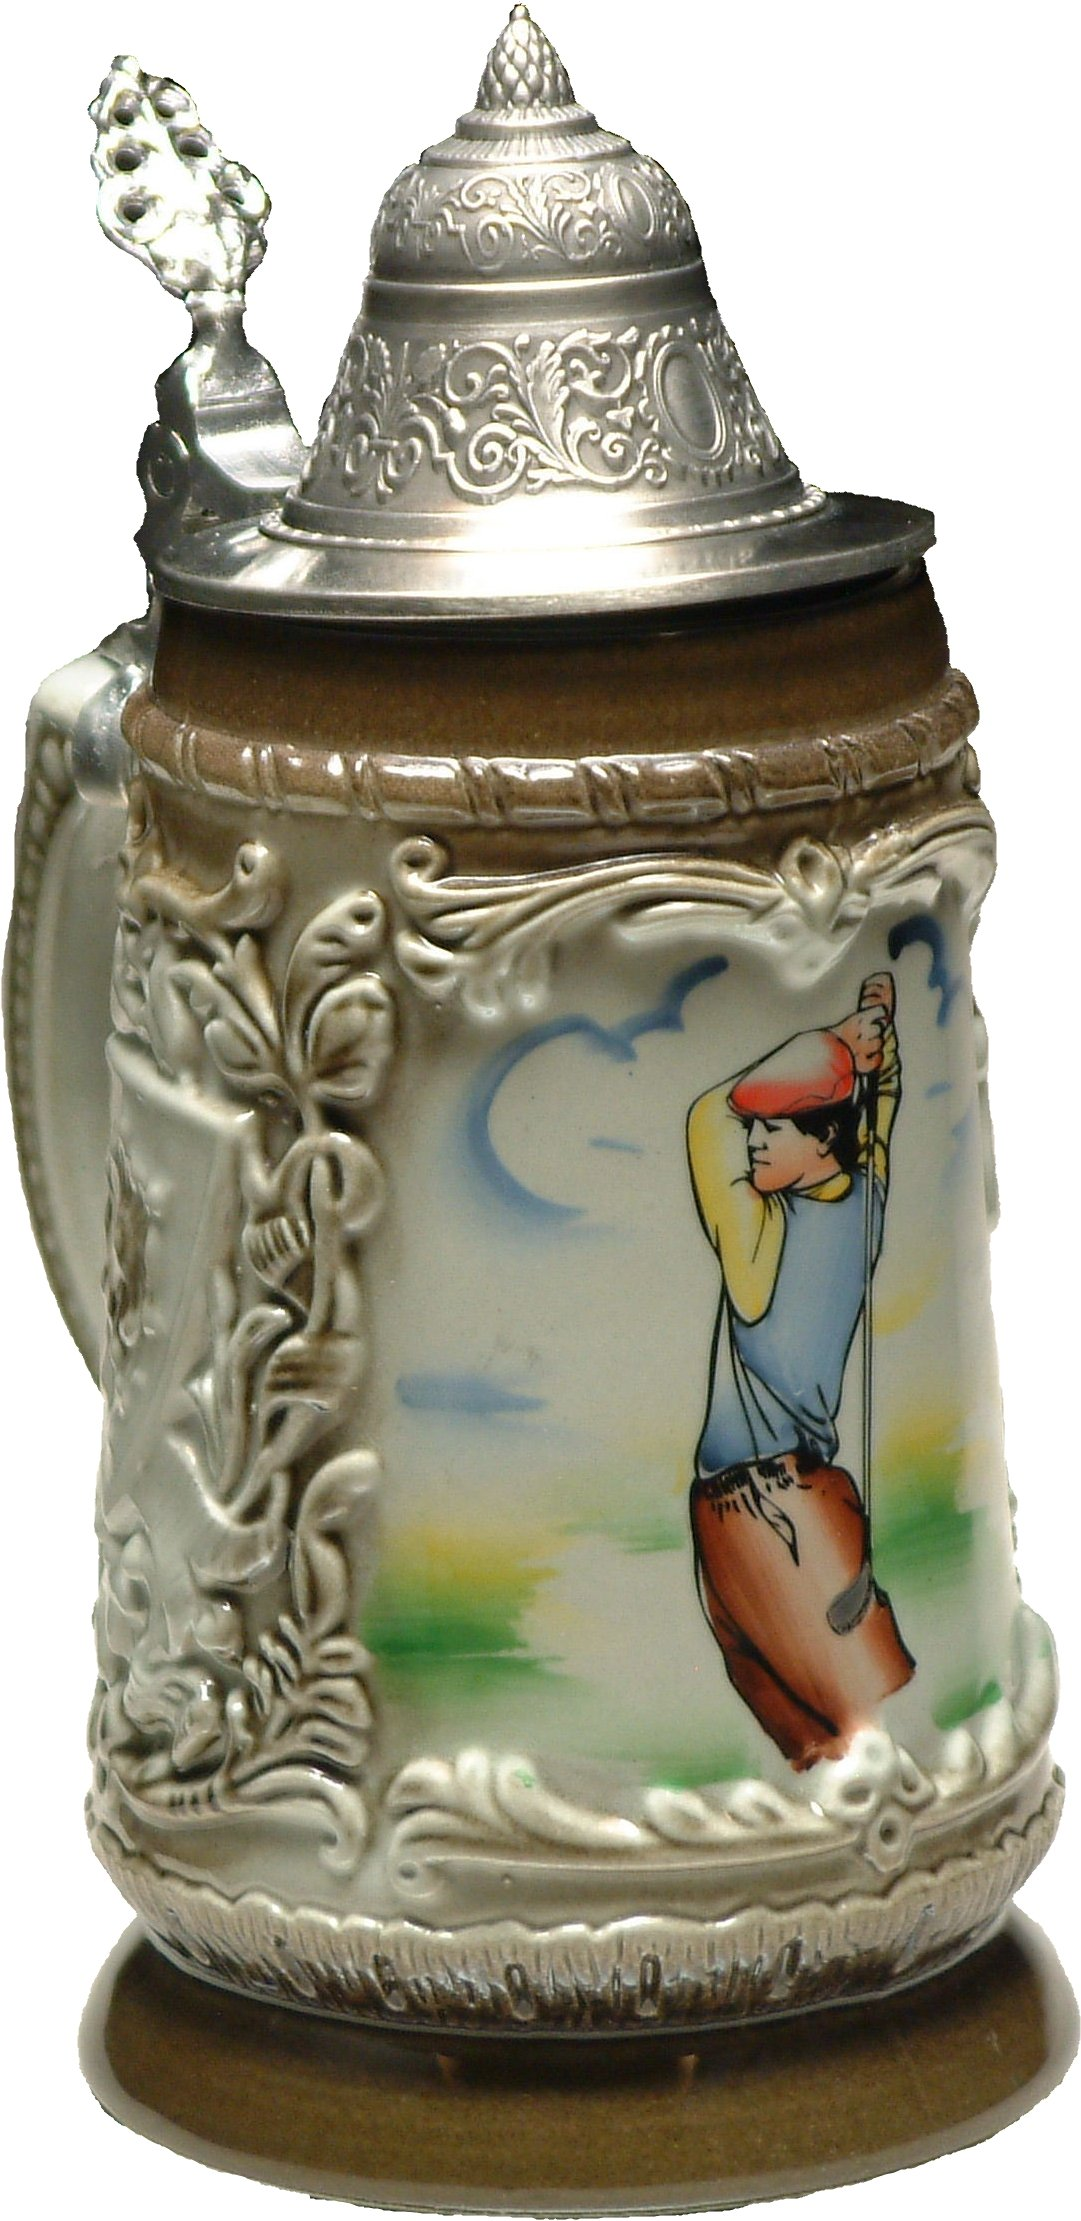 Beer Stein by King - Golf Player Shield German Relief Beer Stein (Beer Mug) 0.5l